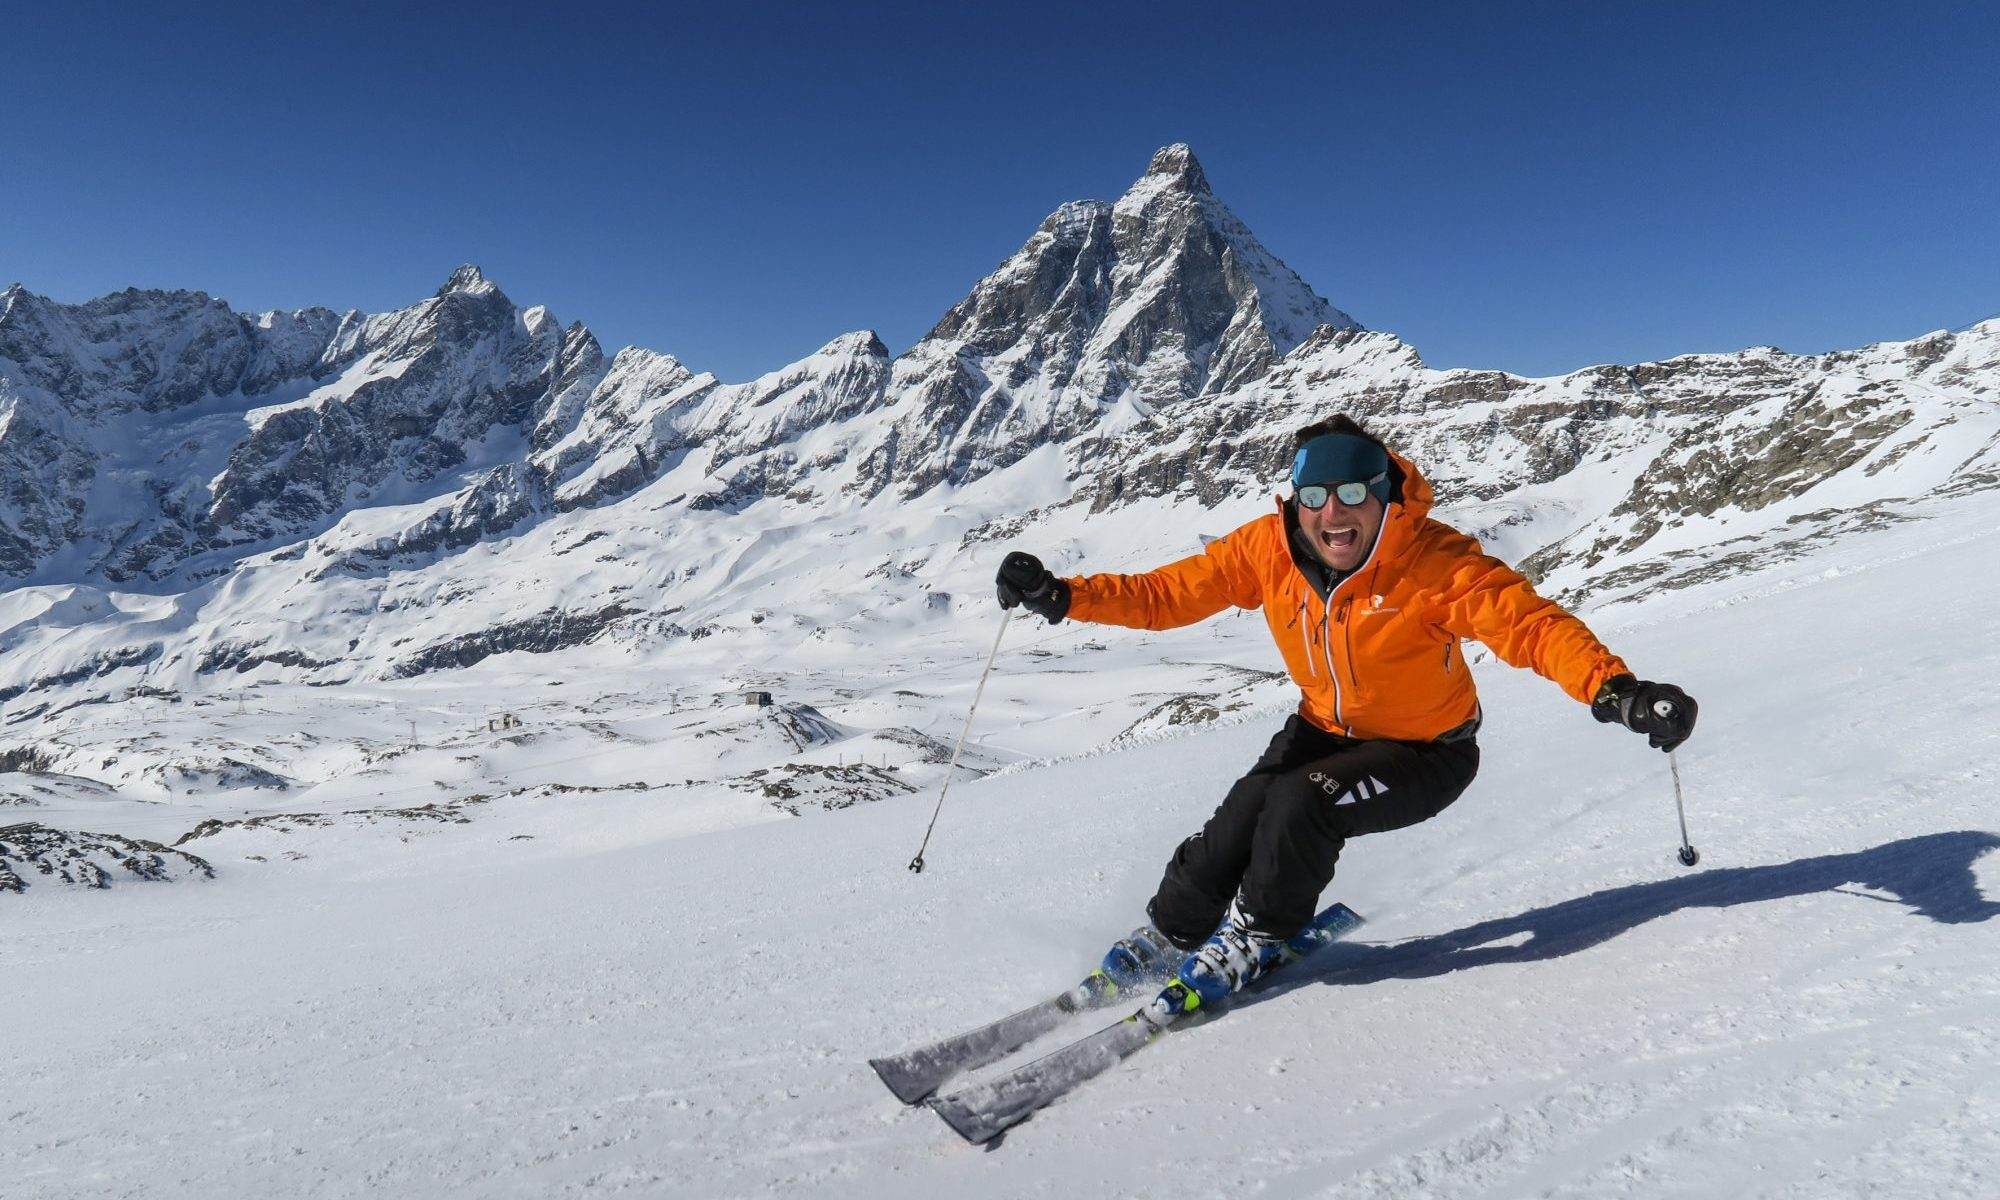 A skier with the Monte Cervino in its background. Spot on Cervino Ski Paradise for the 2018-19 ski season. Photo: Enrico Romanzi. Cervinia Ski Paradise.